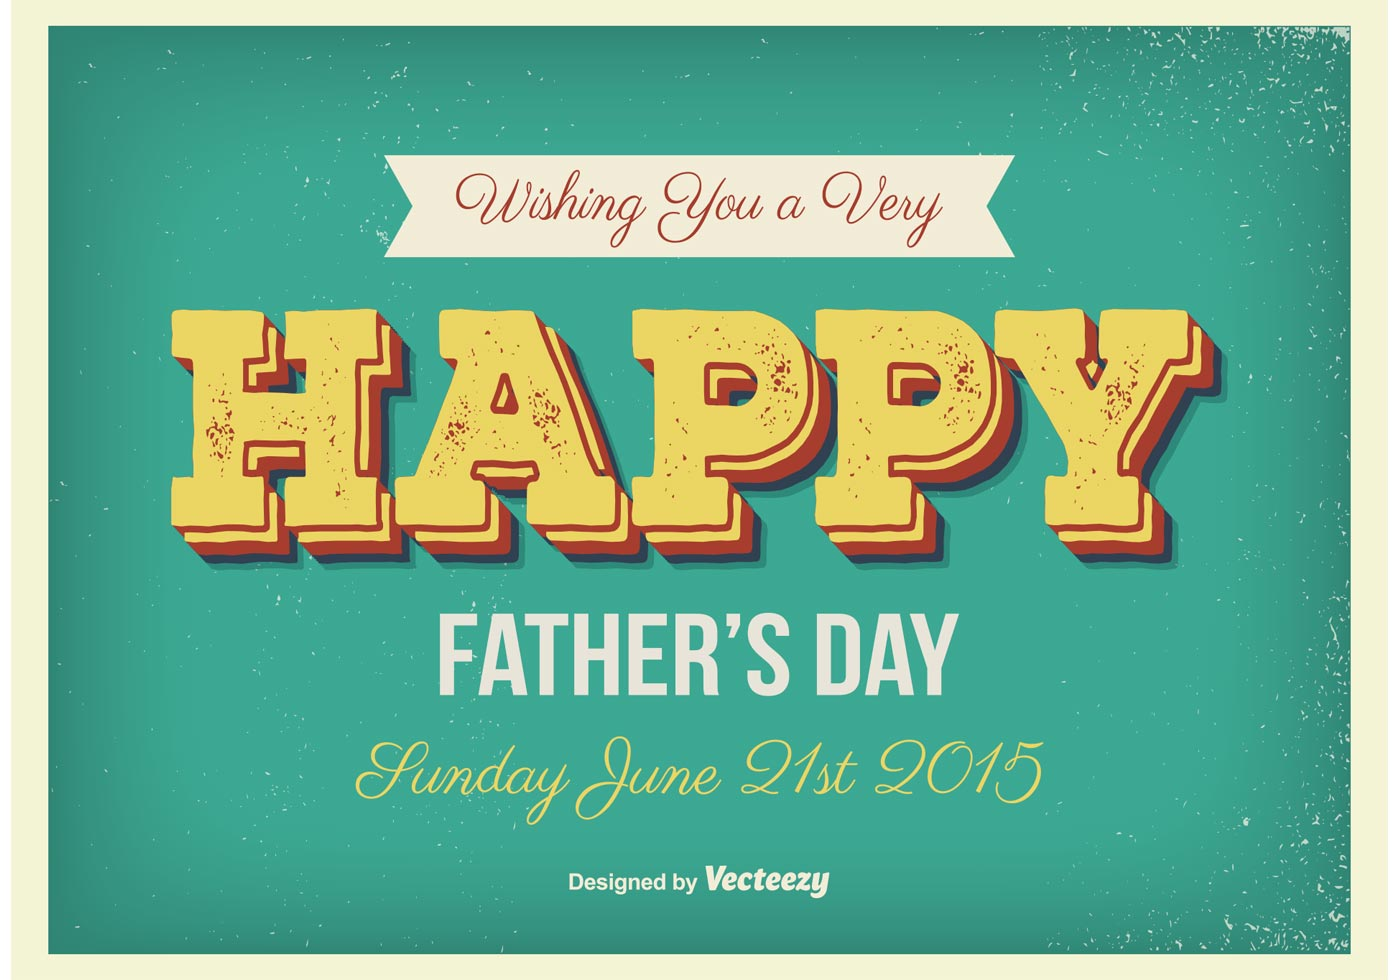 Retro Father's Day Illustration - Download Free Vector Art, Stock ...